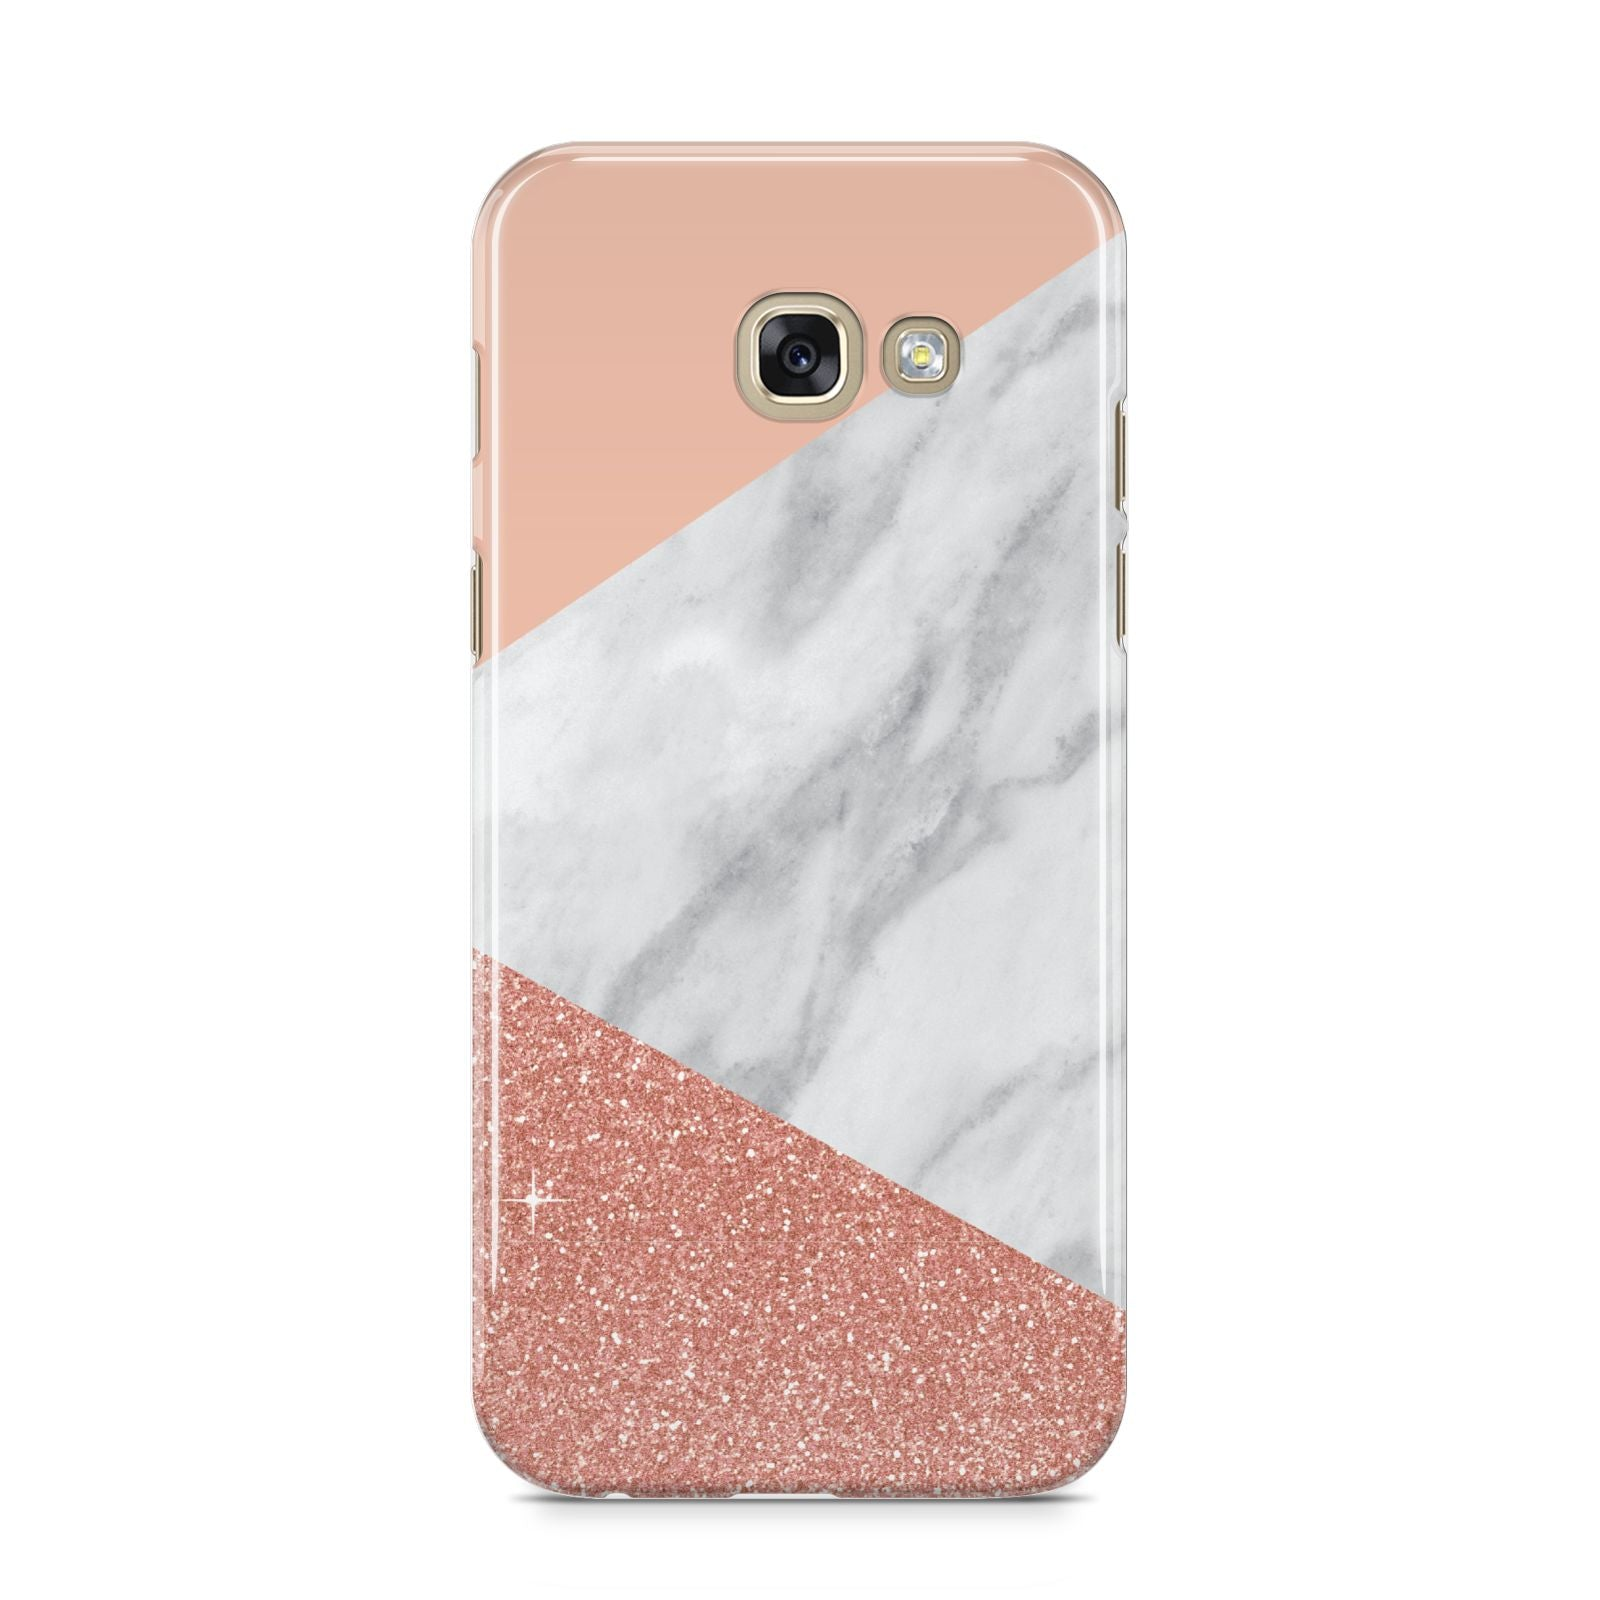 Marble White Rose Gold Samsung Galaxy A5 2017 Case on gold phone